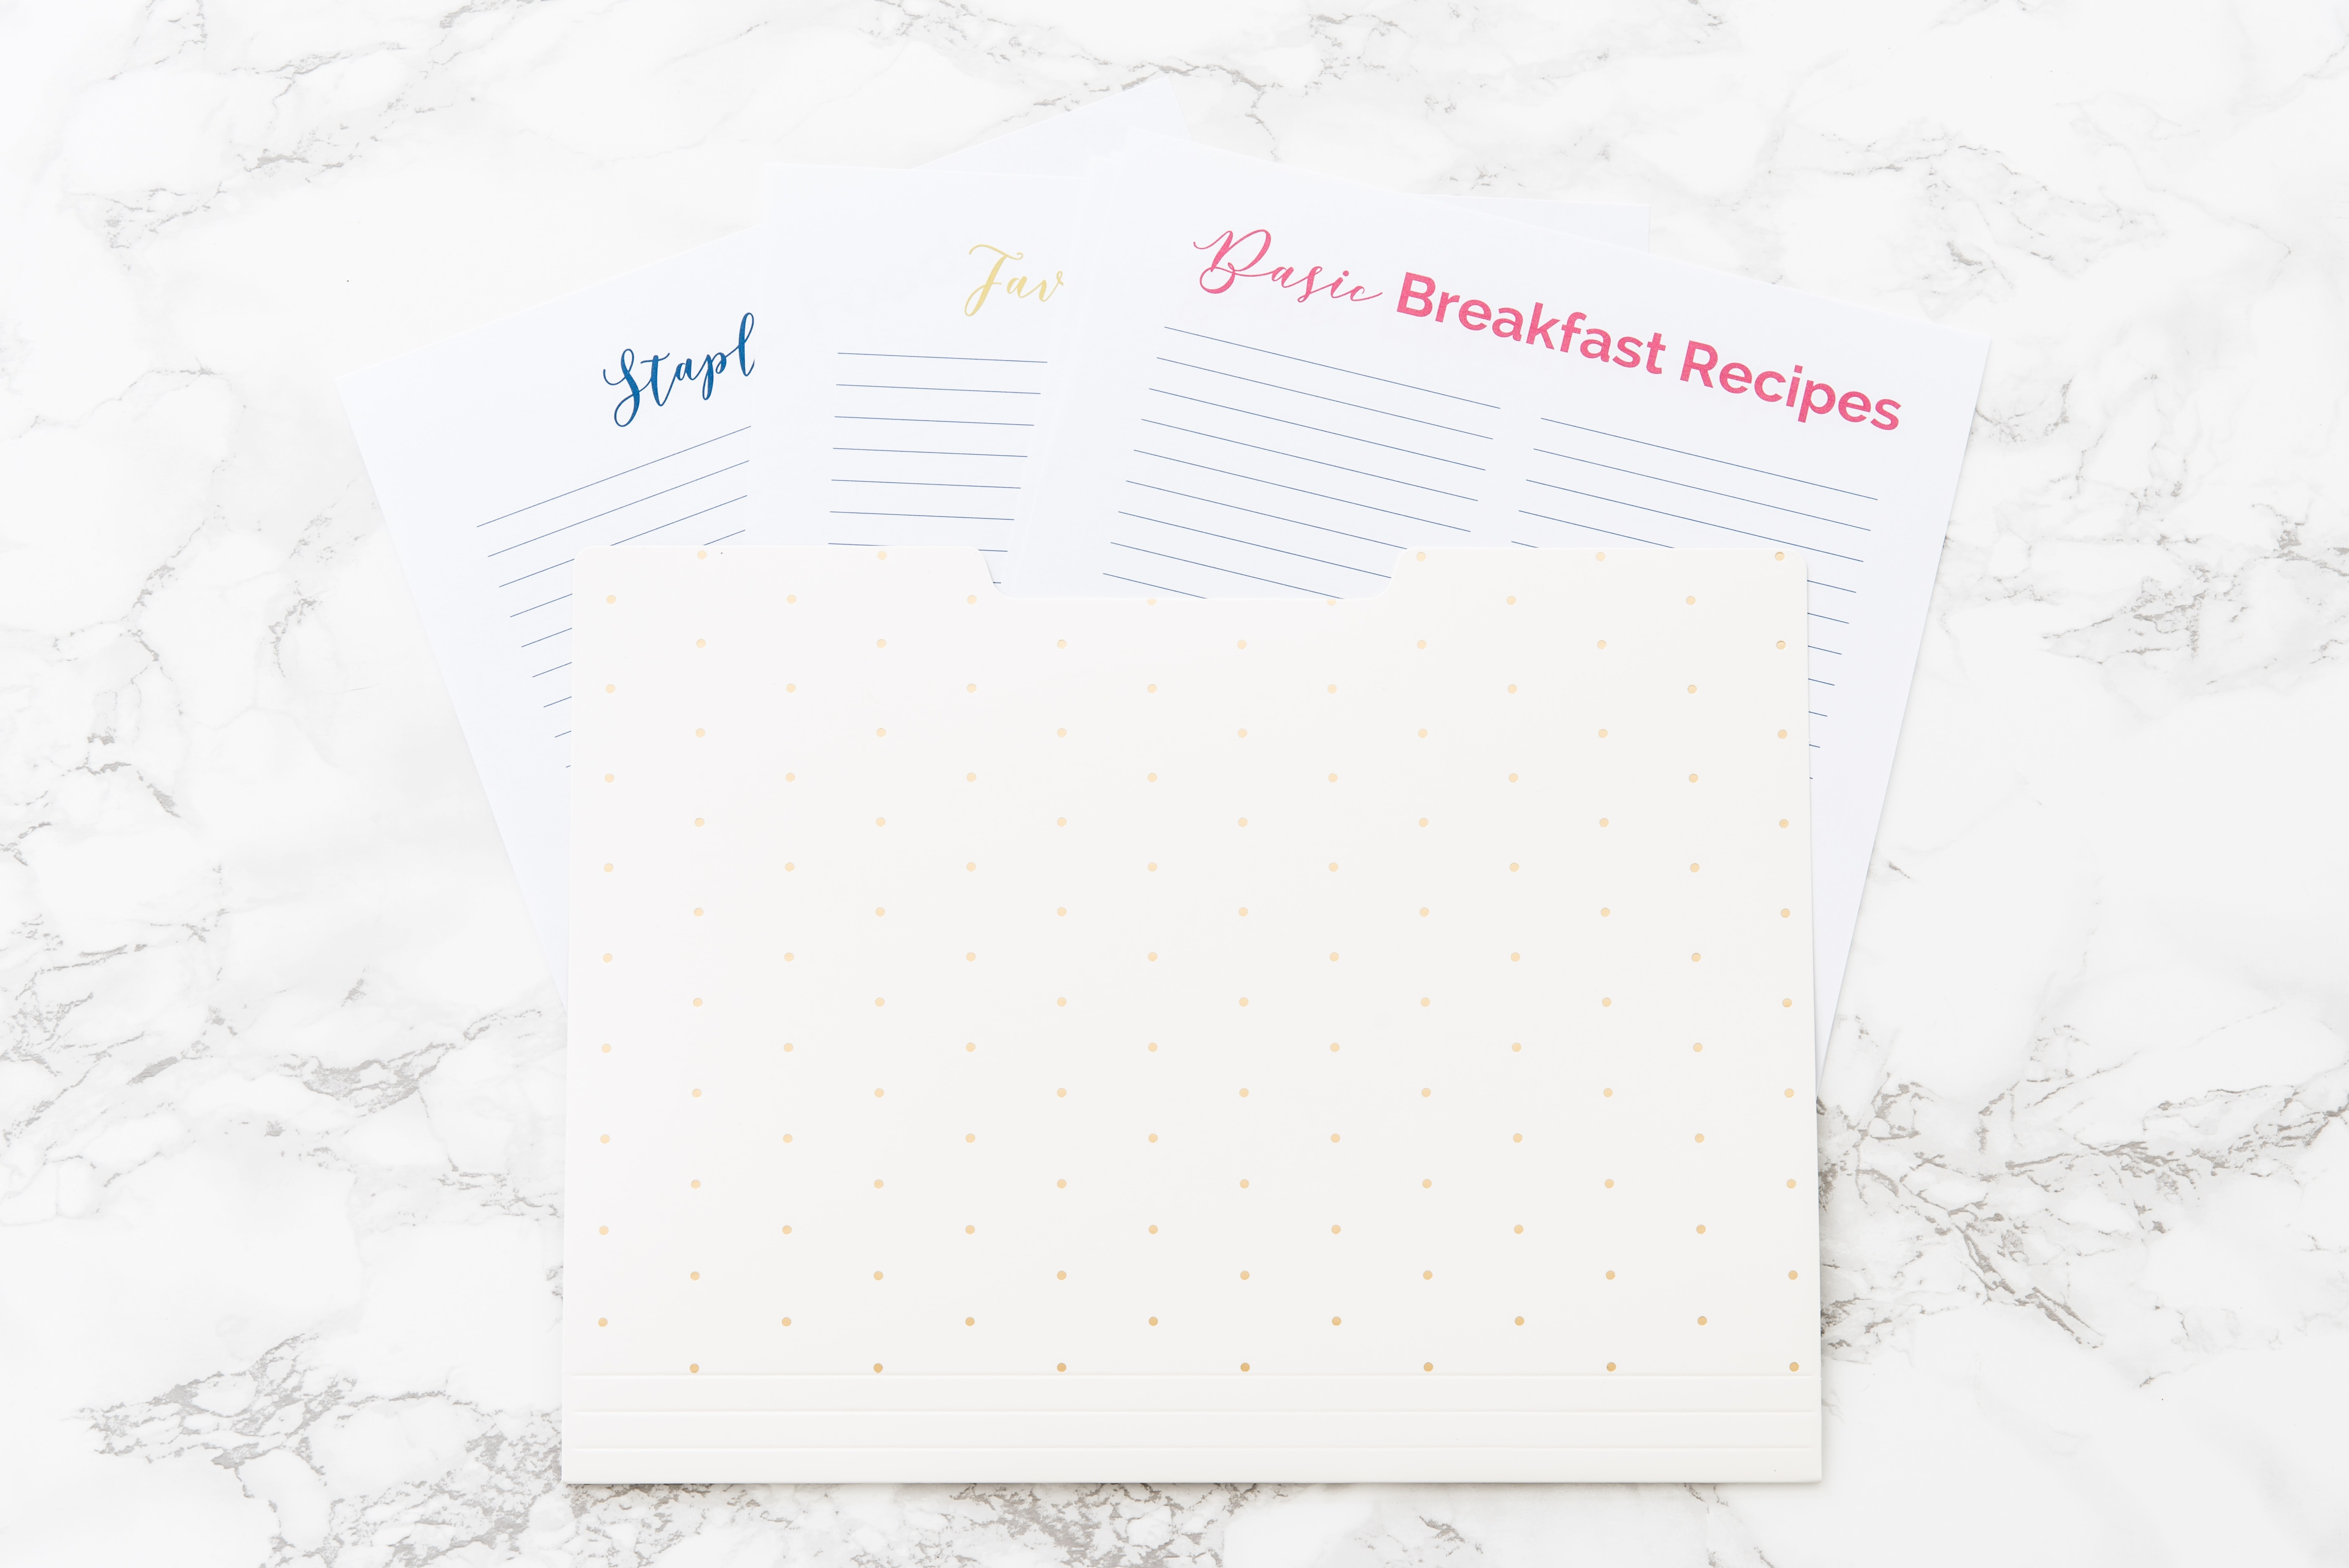 meal planning printable reference guides in white file folder